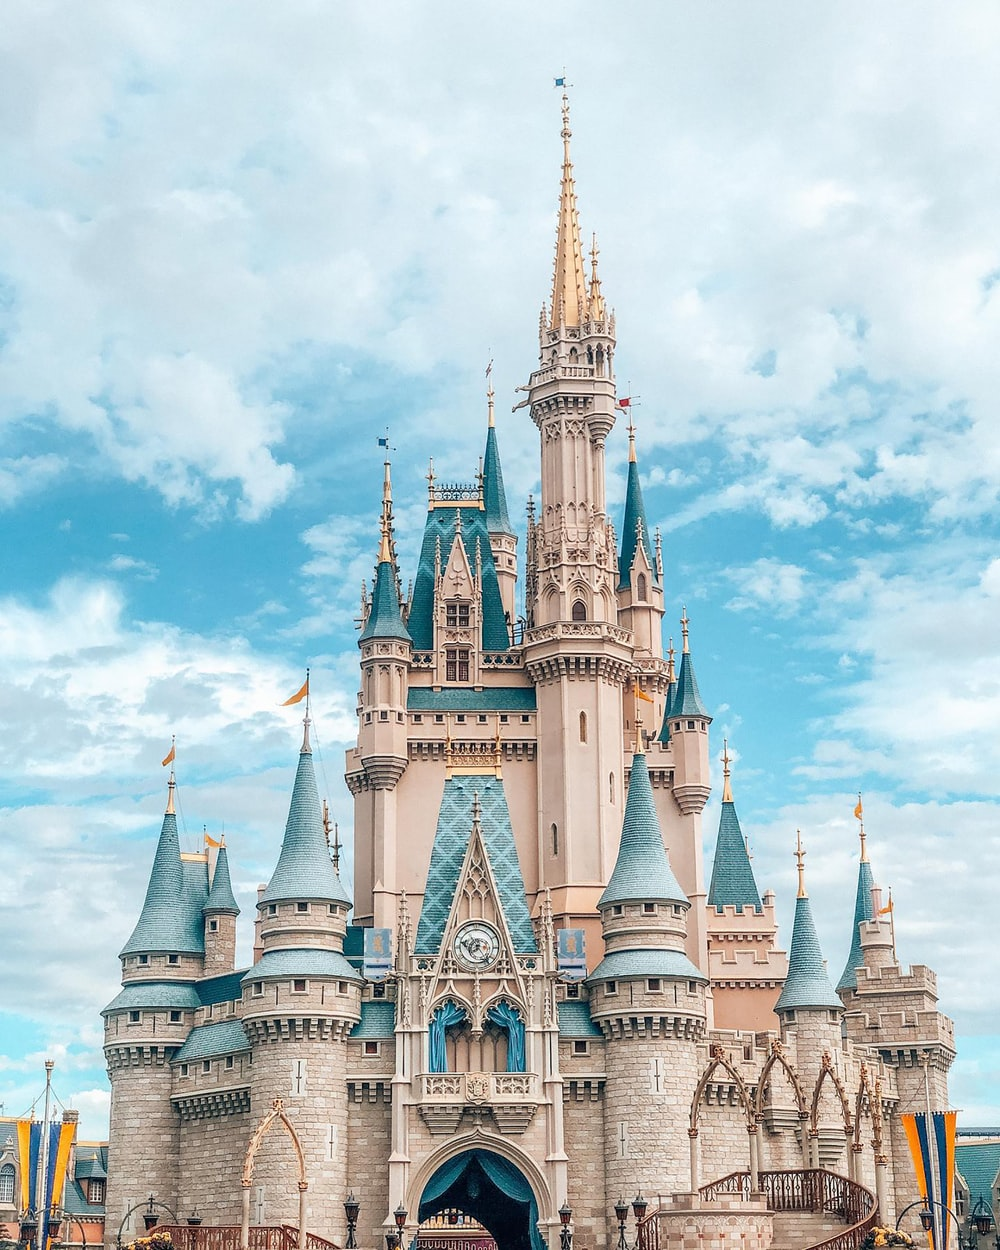 white and blue castle under blue sky and white clouds during daytime